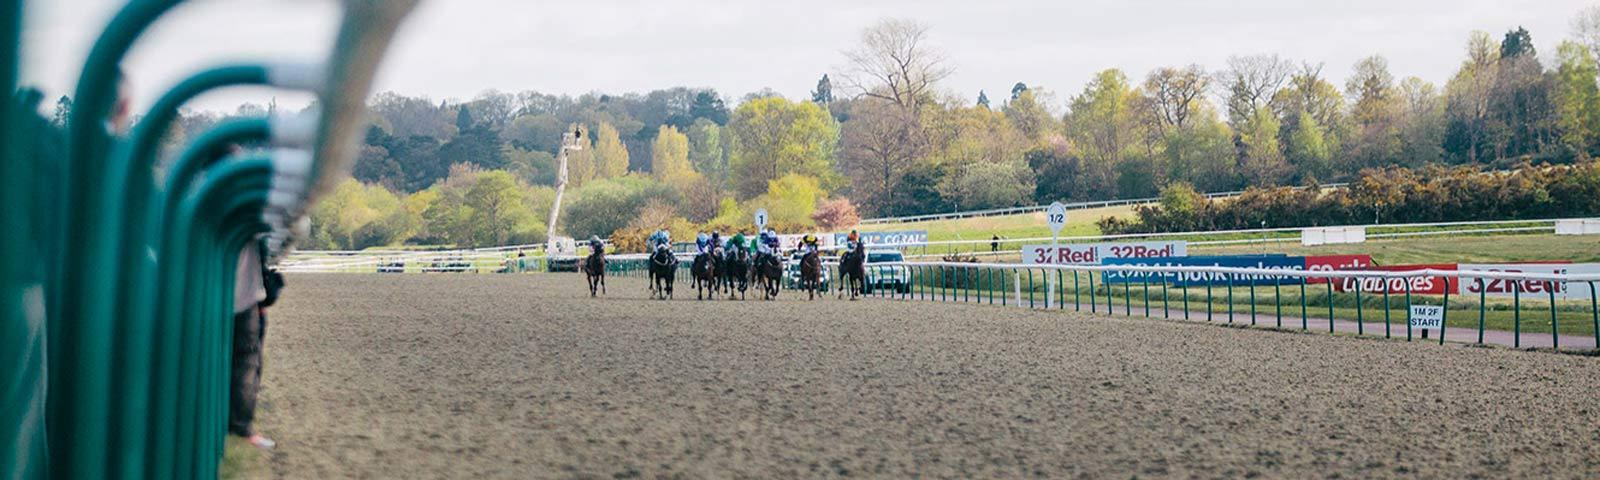 Group of jockeys racing in the distance.